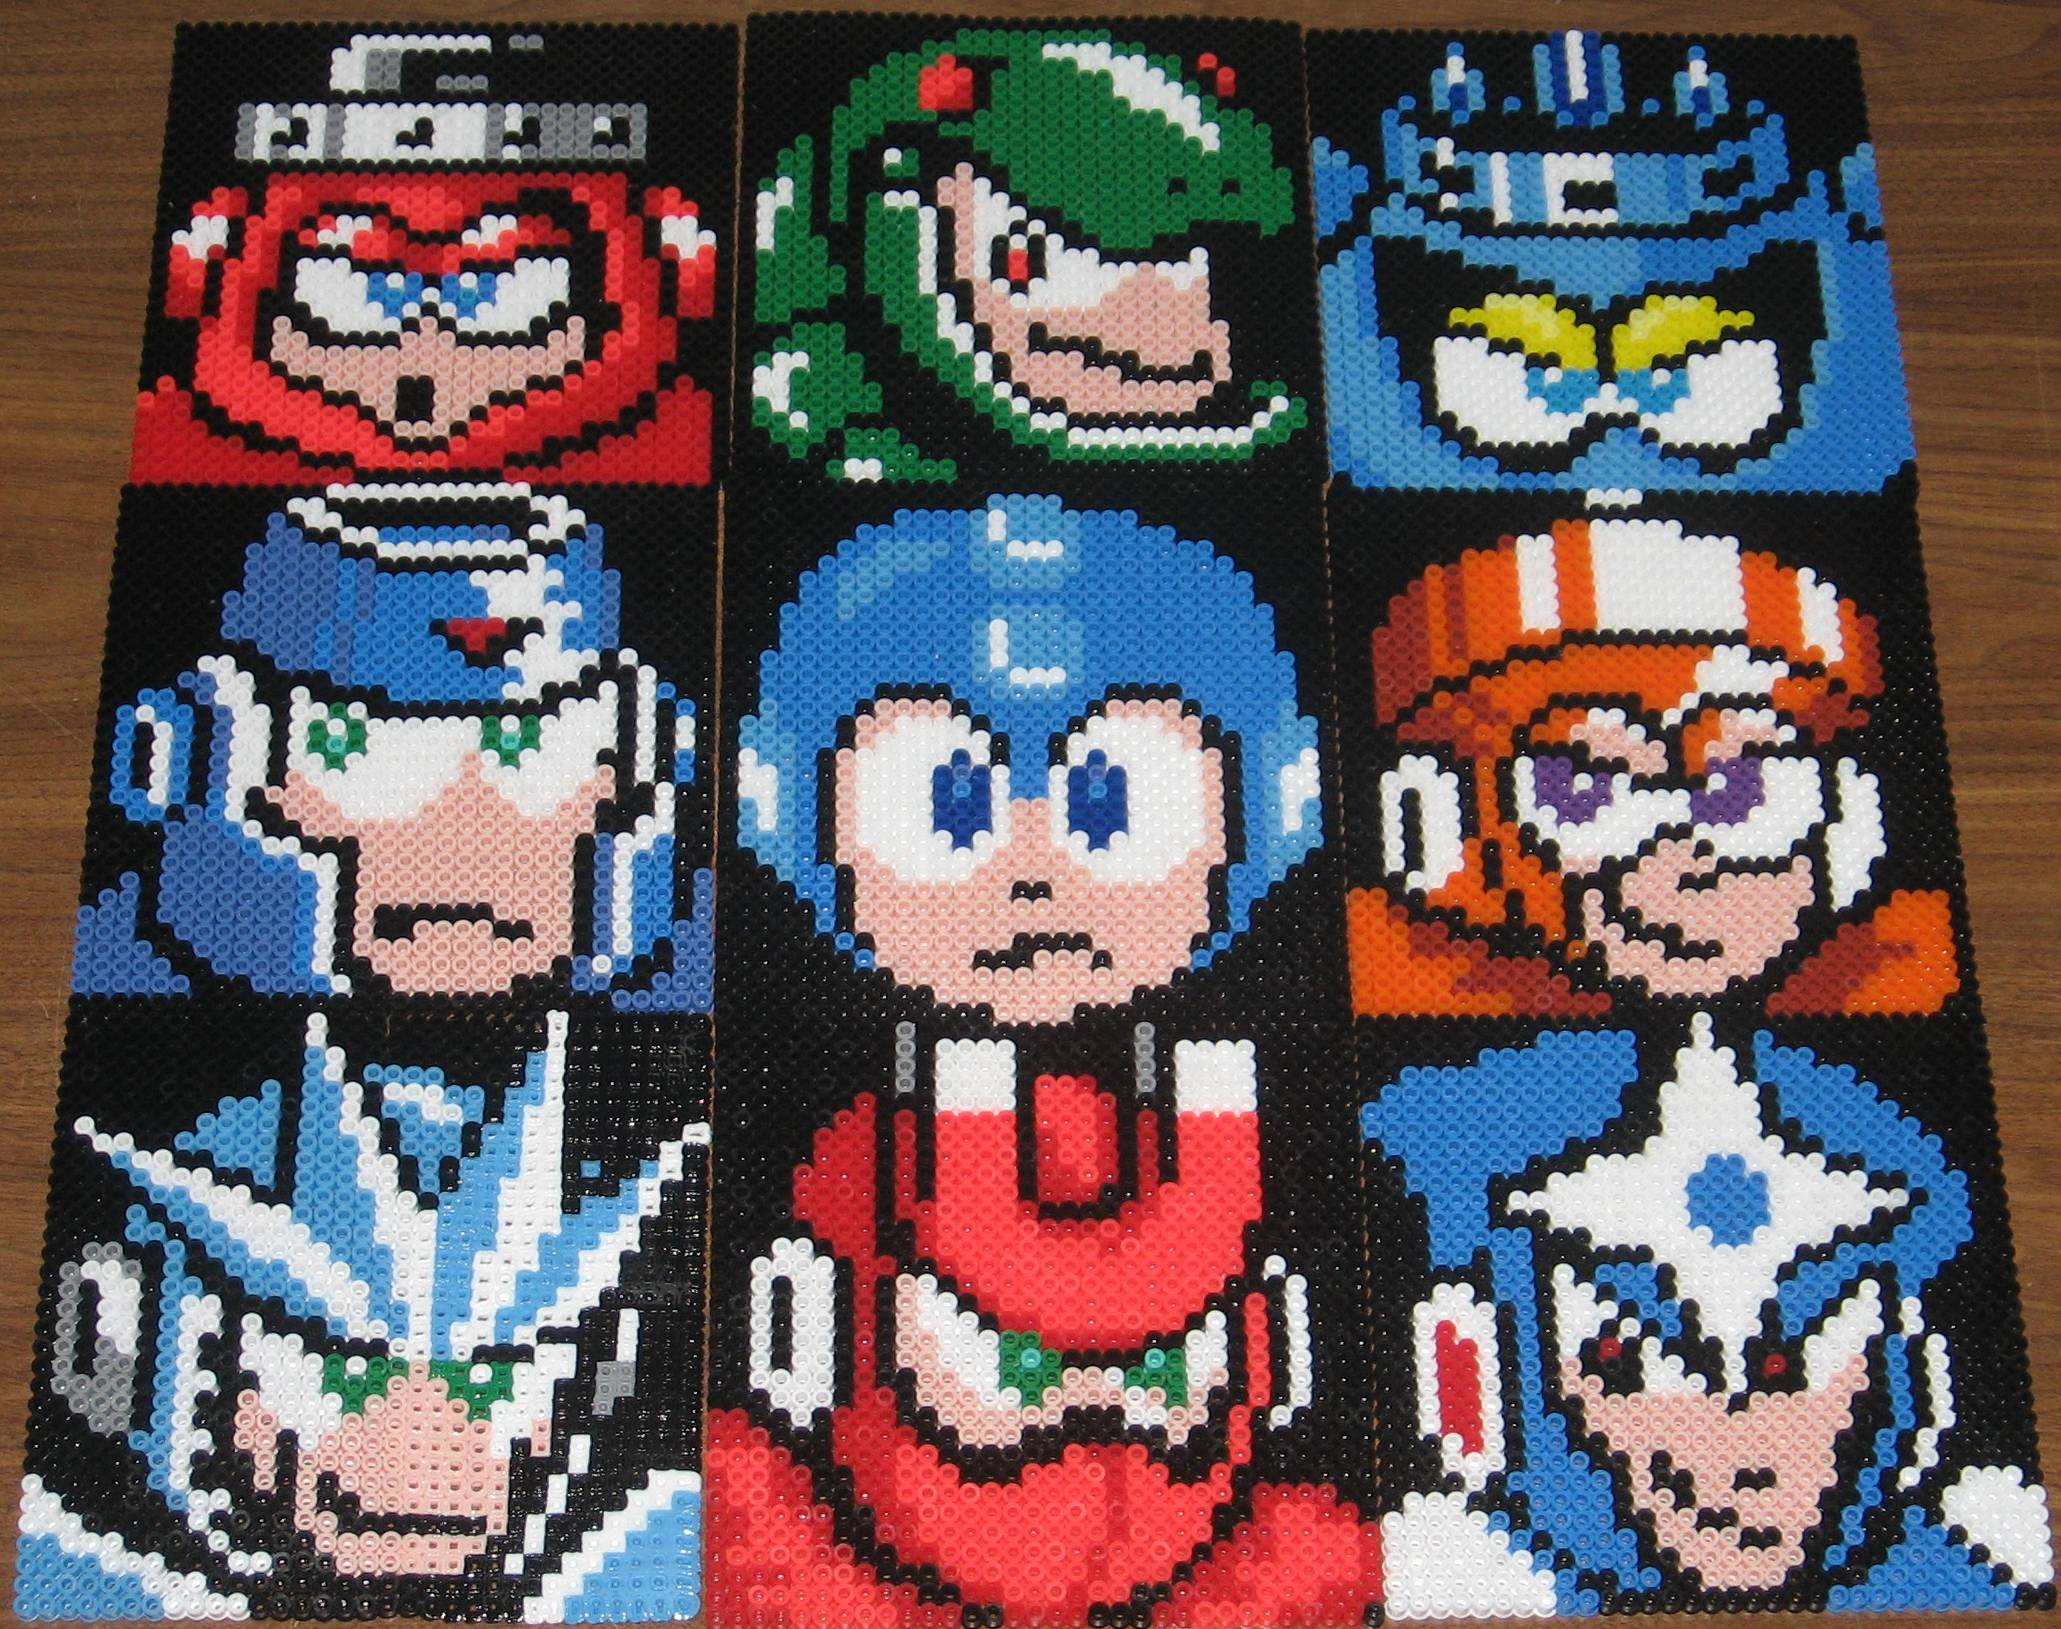 As if I needed another reason to love Megaman 3, I found this randomly